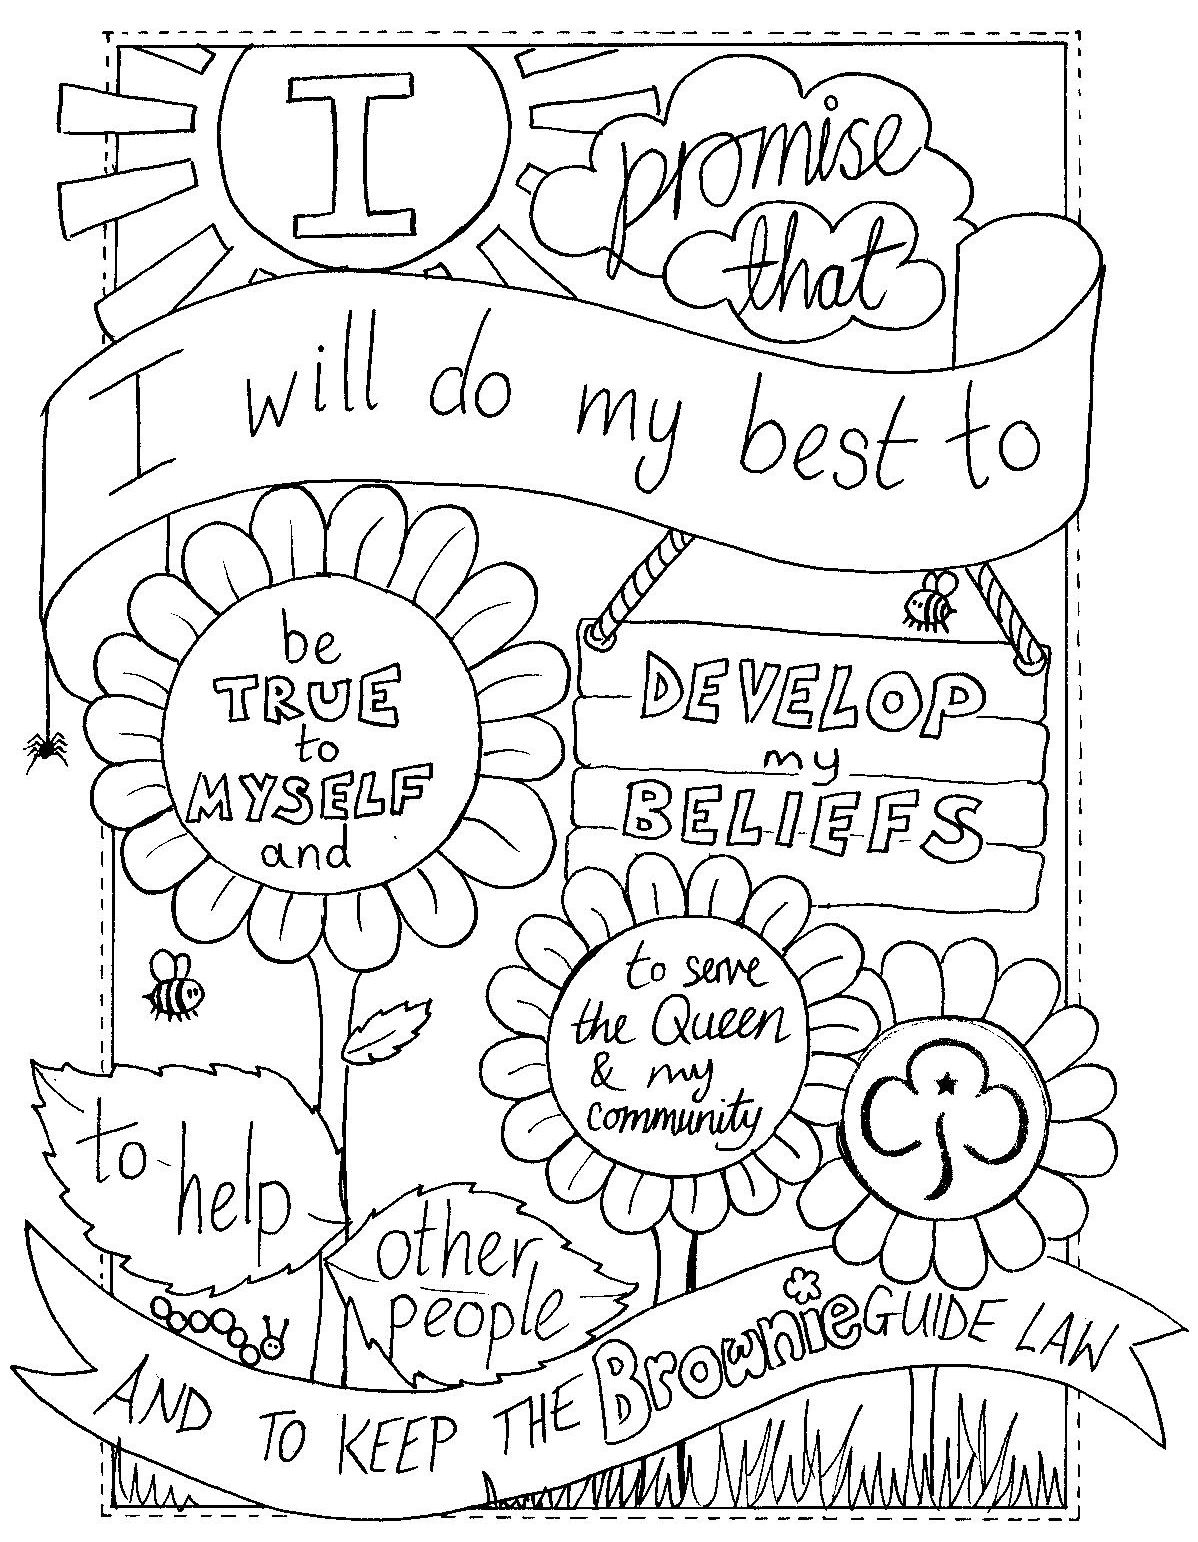 girl scout cookies coloring pages ltccp5 girl scout cookie sales daisy girl scouts girl cookies scout girl pages coloring